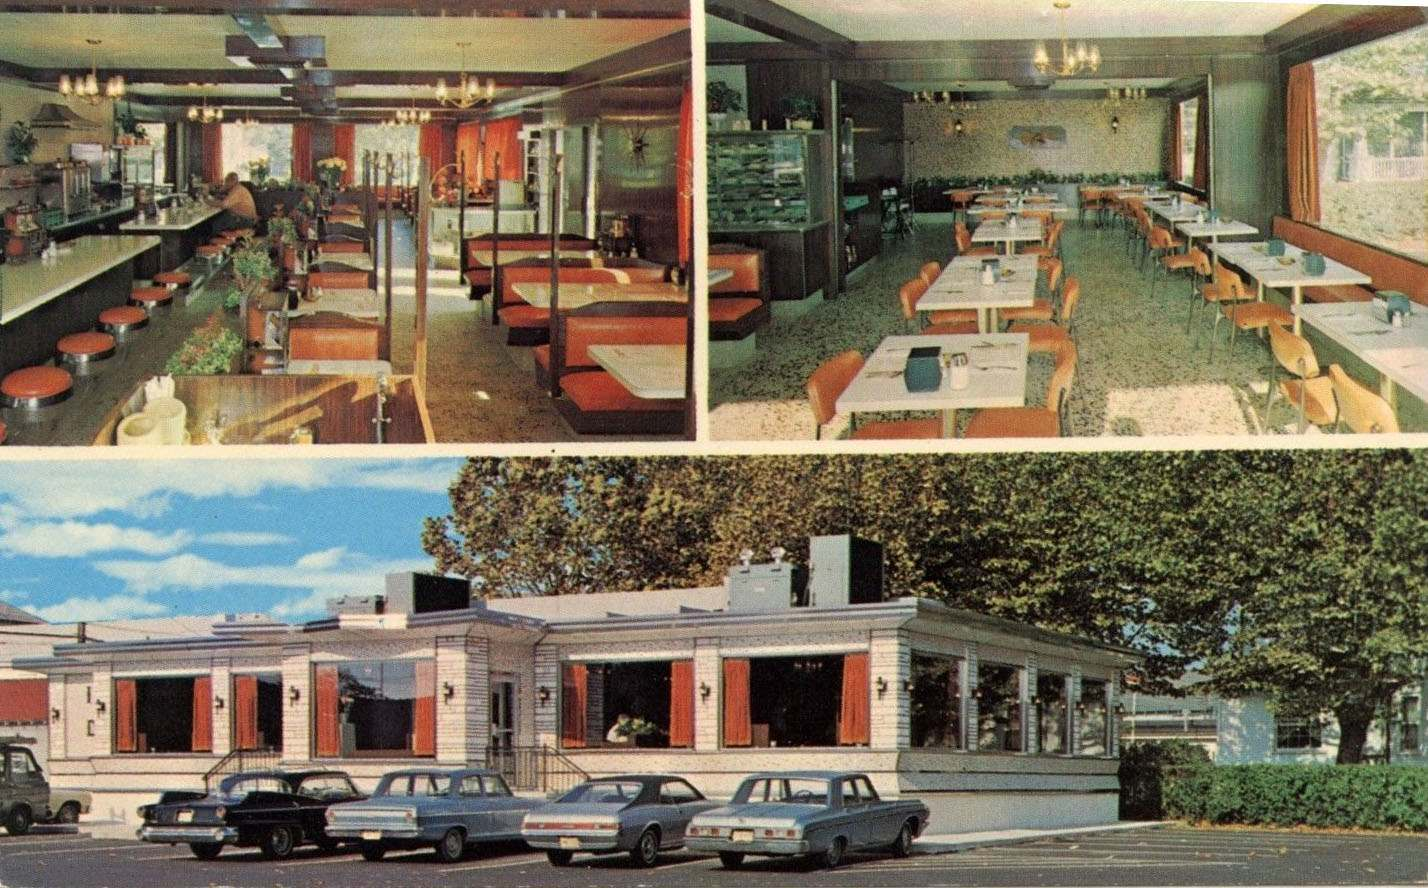 Ideal Diner - EGG HARBOR NJ - c.1960